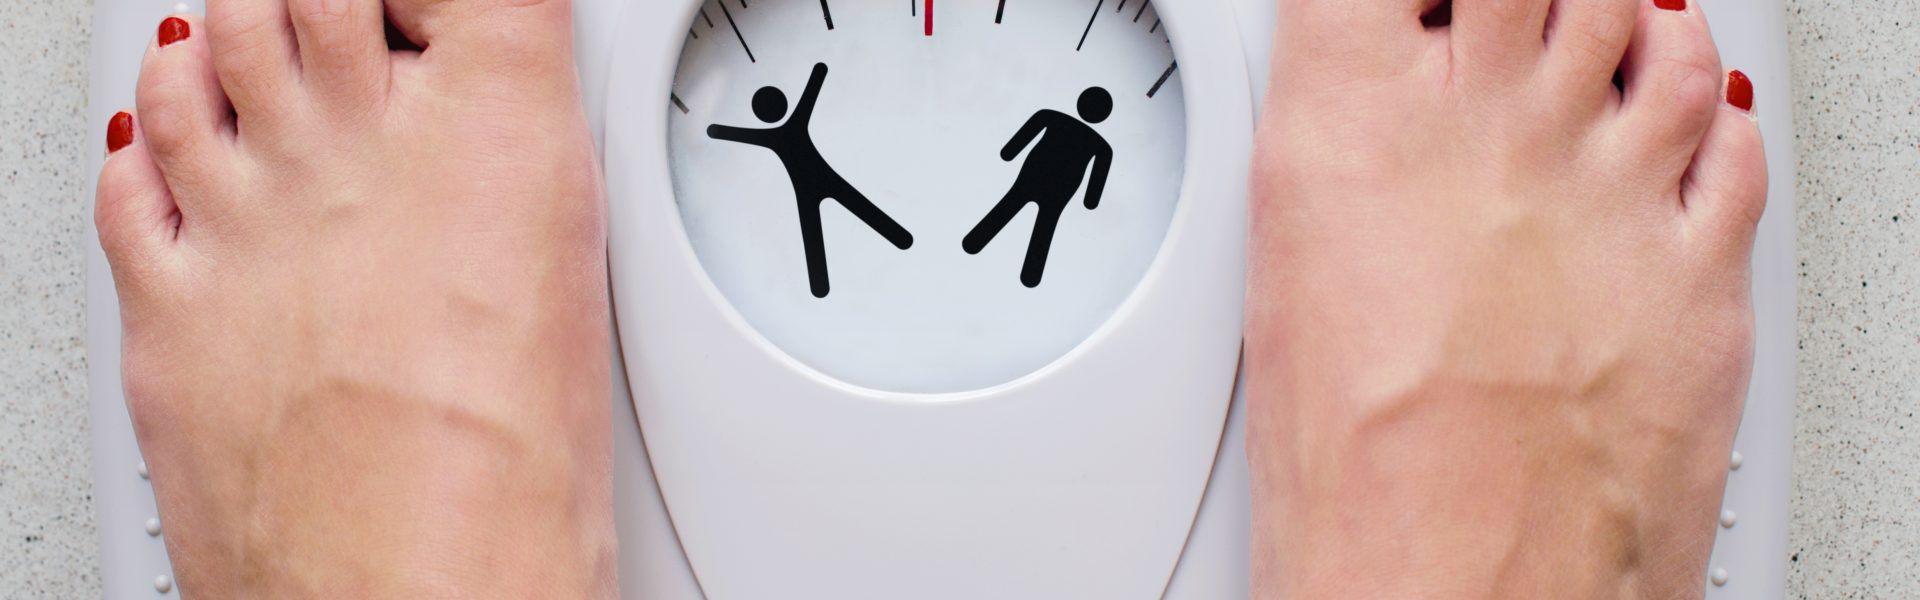 Elissa Medical Clinic - Weight Management